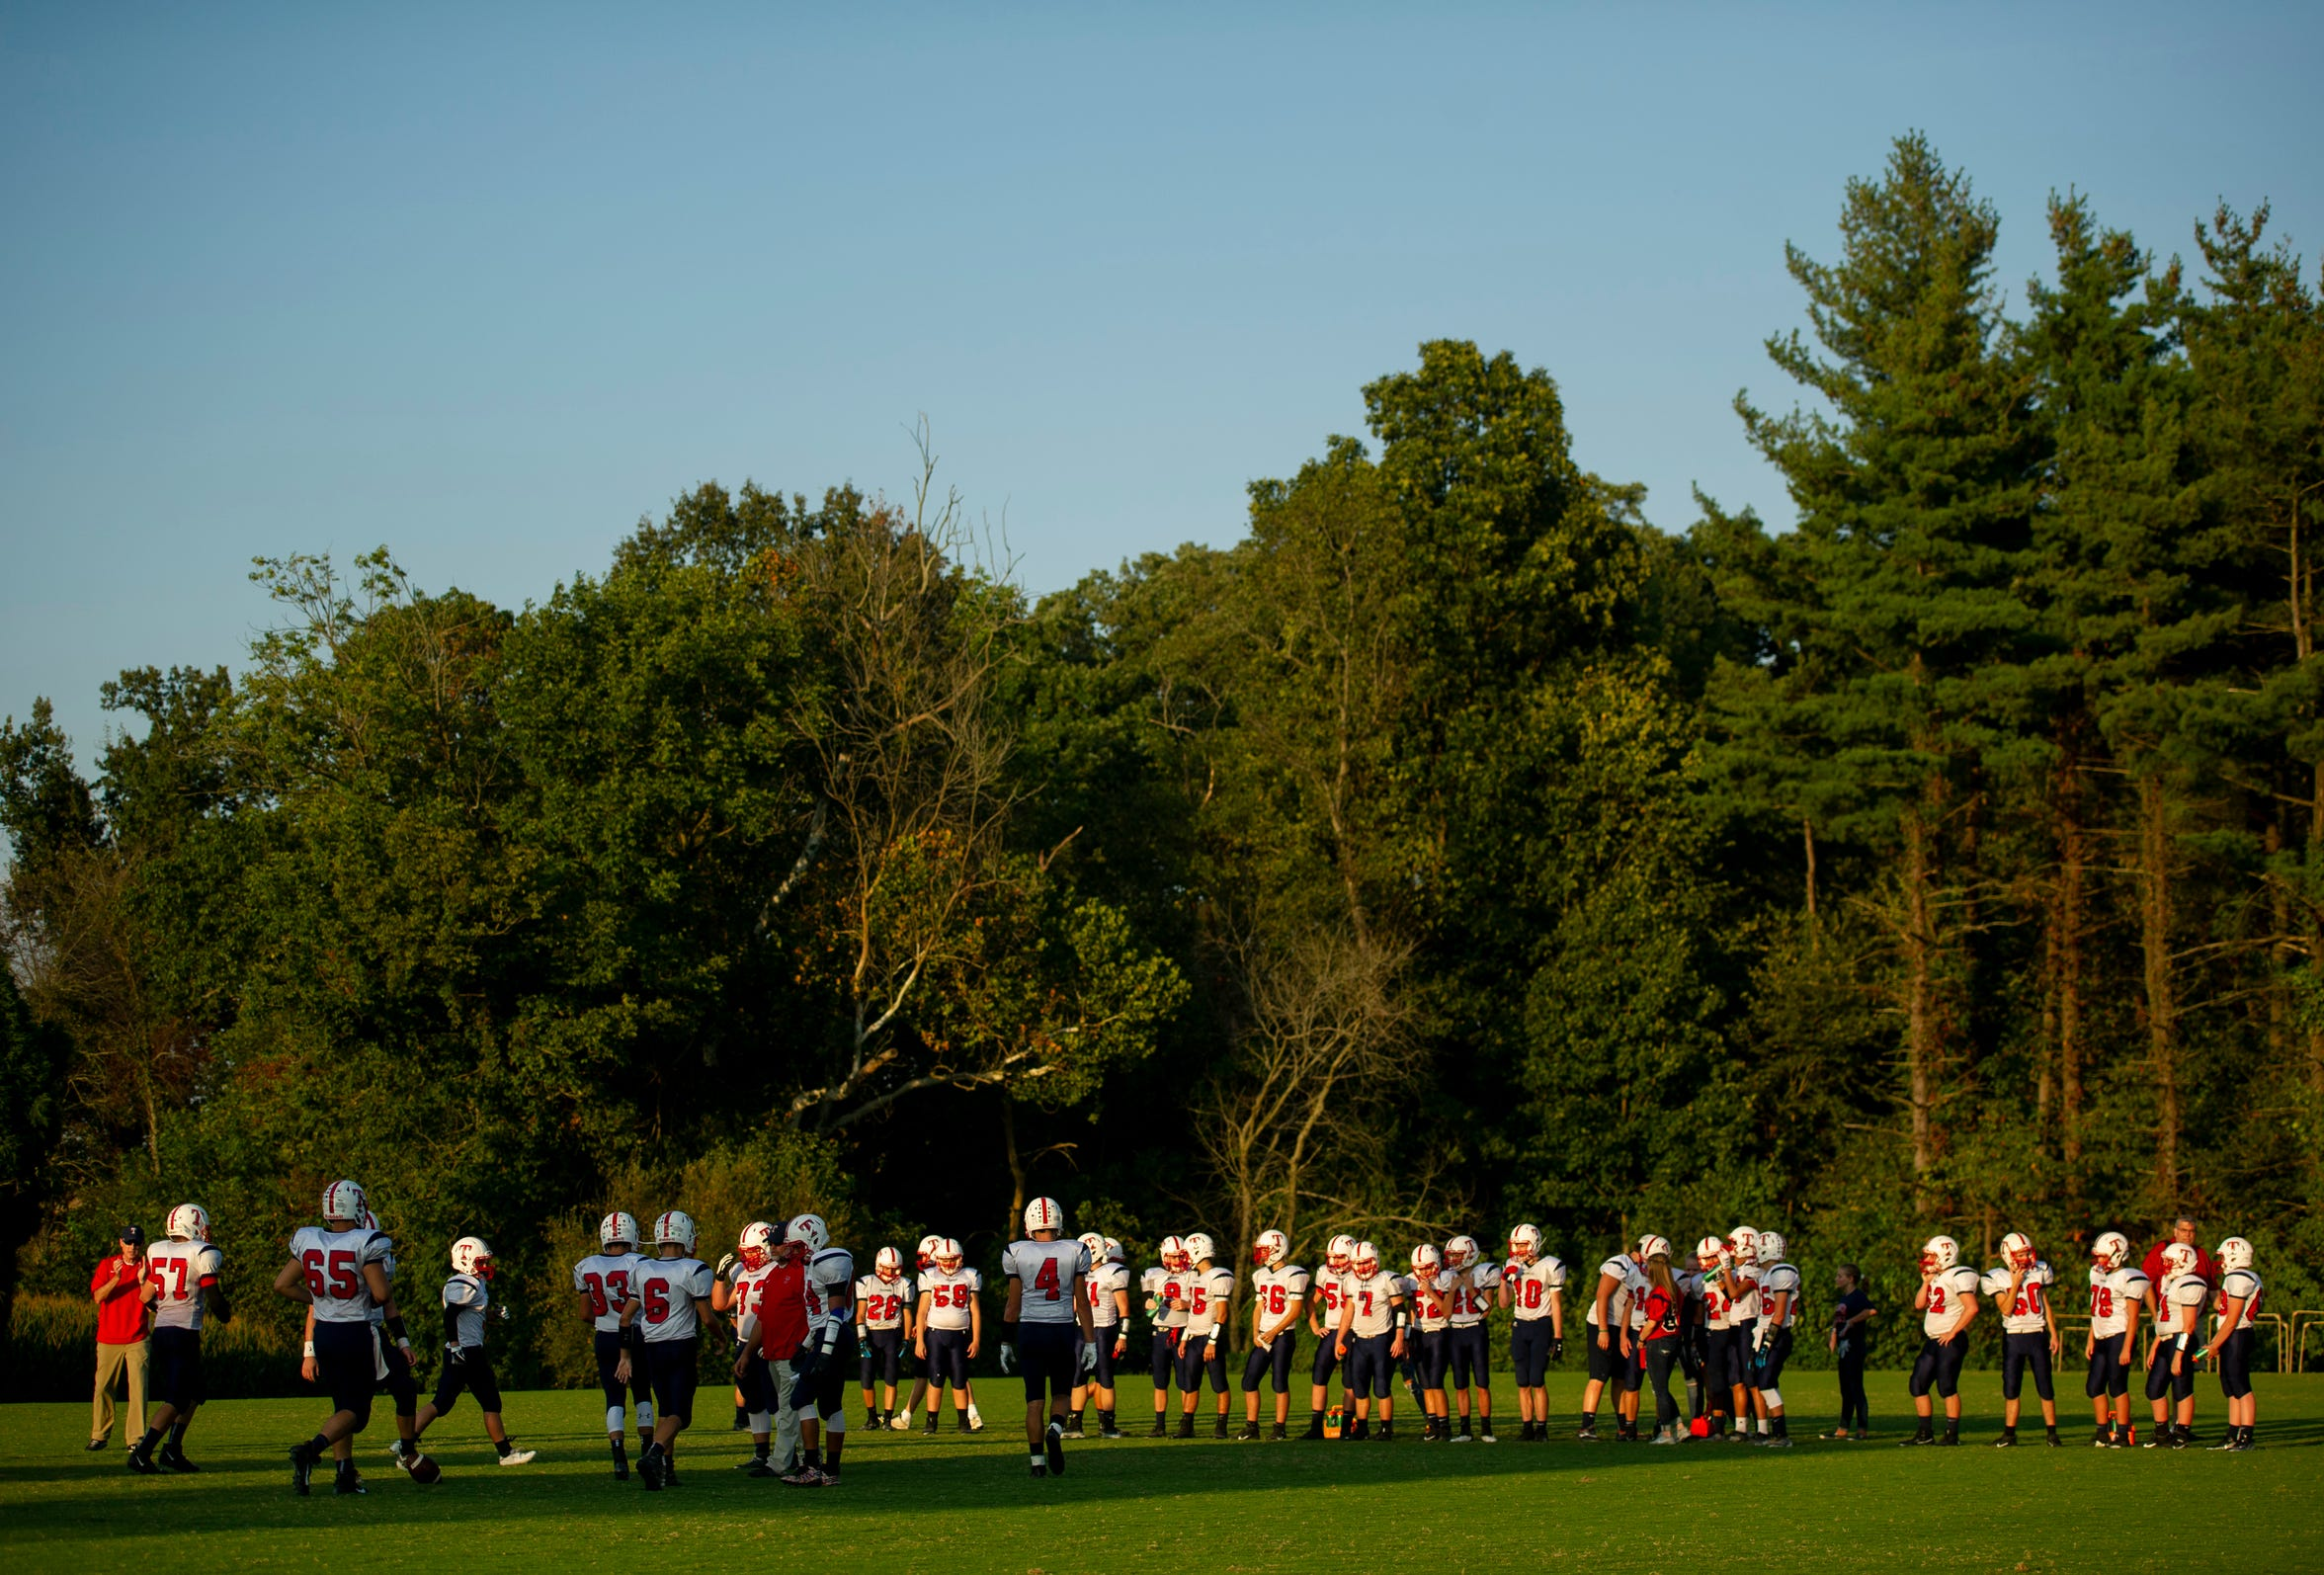 The Tecumseh High School football team lines up in a field downhill from the Forest Park High School football field before playing Forest Park in Ferdinand, Ind., Friday evening, Sept. 13, 2019.